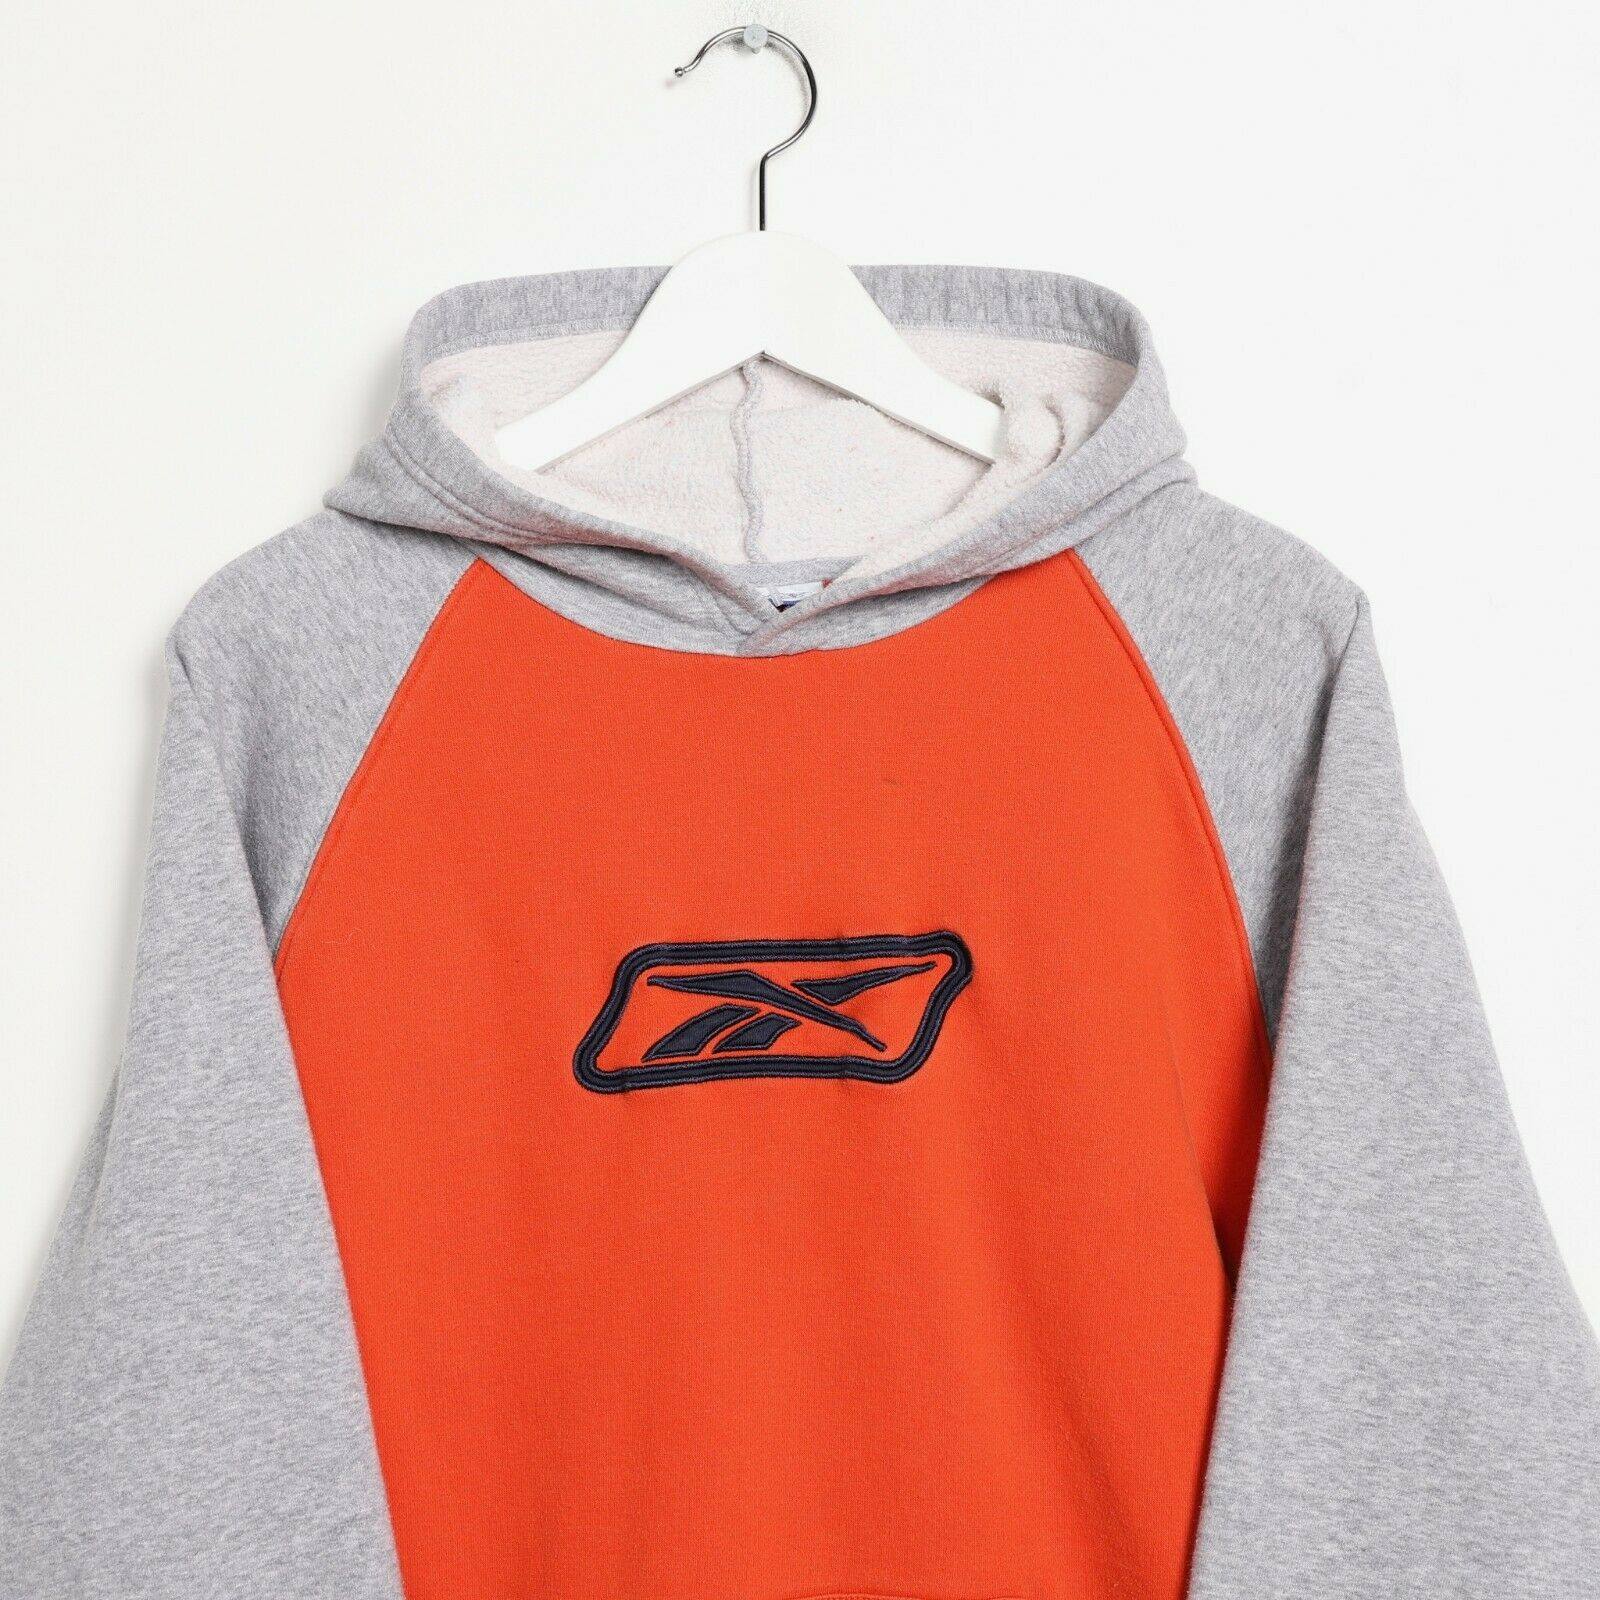 Vintage Women's REEBOK Big Logo Hoodie Sweatshirt Orange | Small S